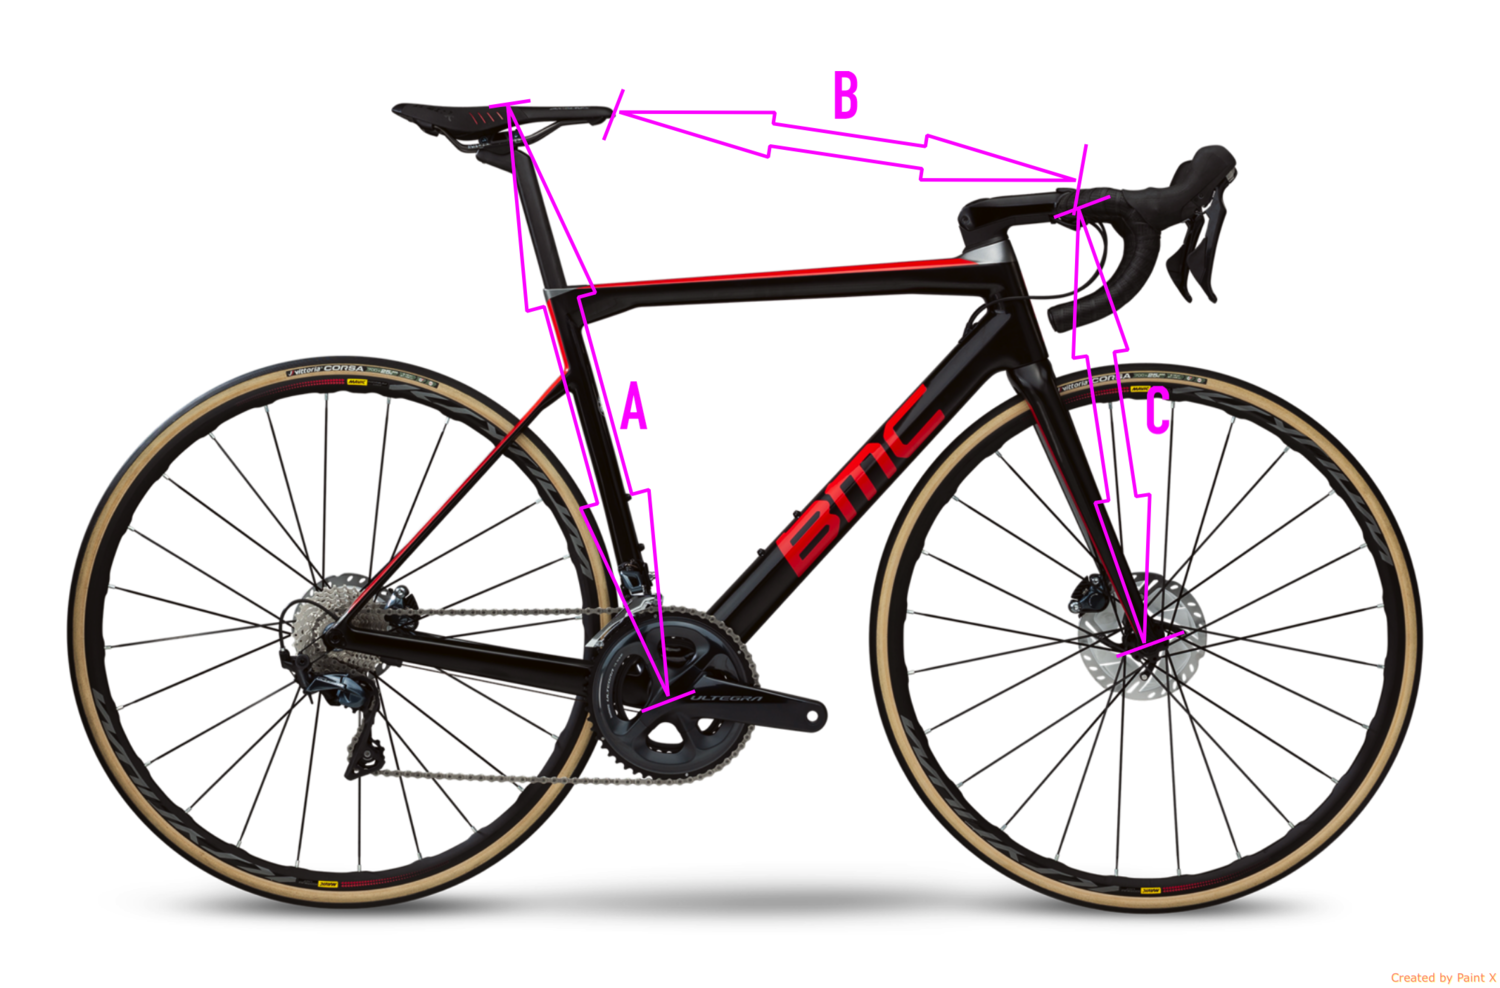 Step 1 - Paying attention to the photo - measure your bike and write down the following;A - Centre of crank arm to the top of the saddleB - Tip of the saddle to the centre of the handlebarsC - Centre of handlebars/stem to the centre of the wheel